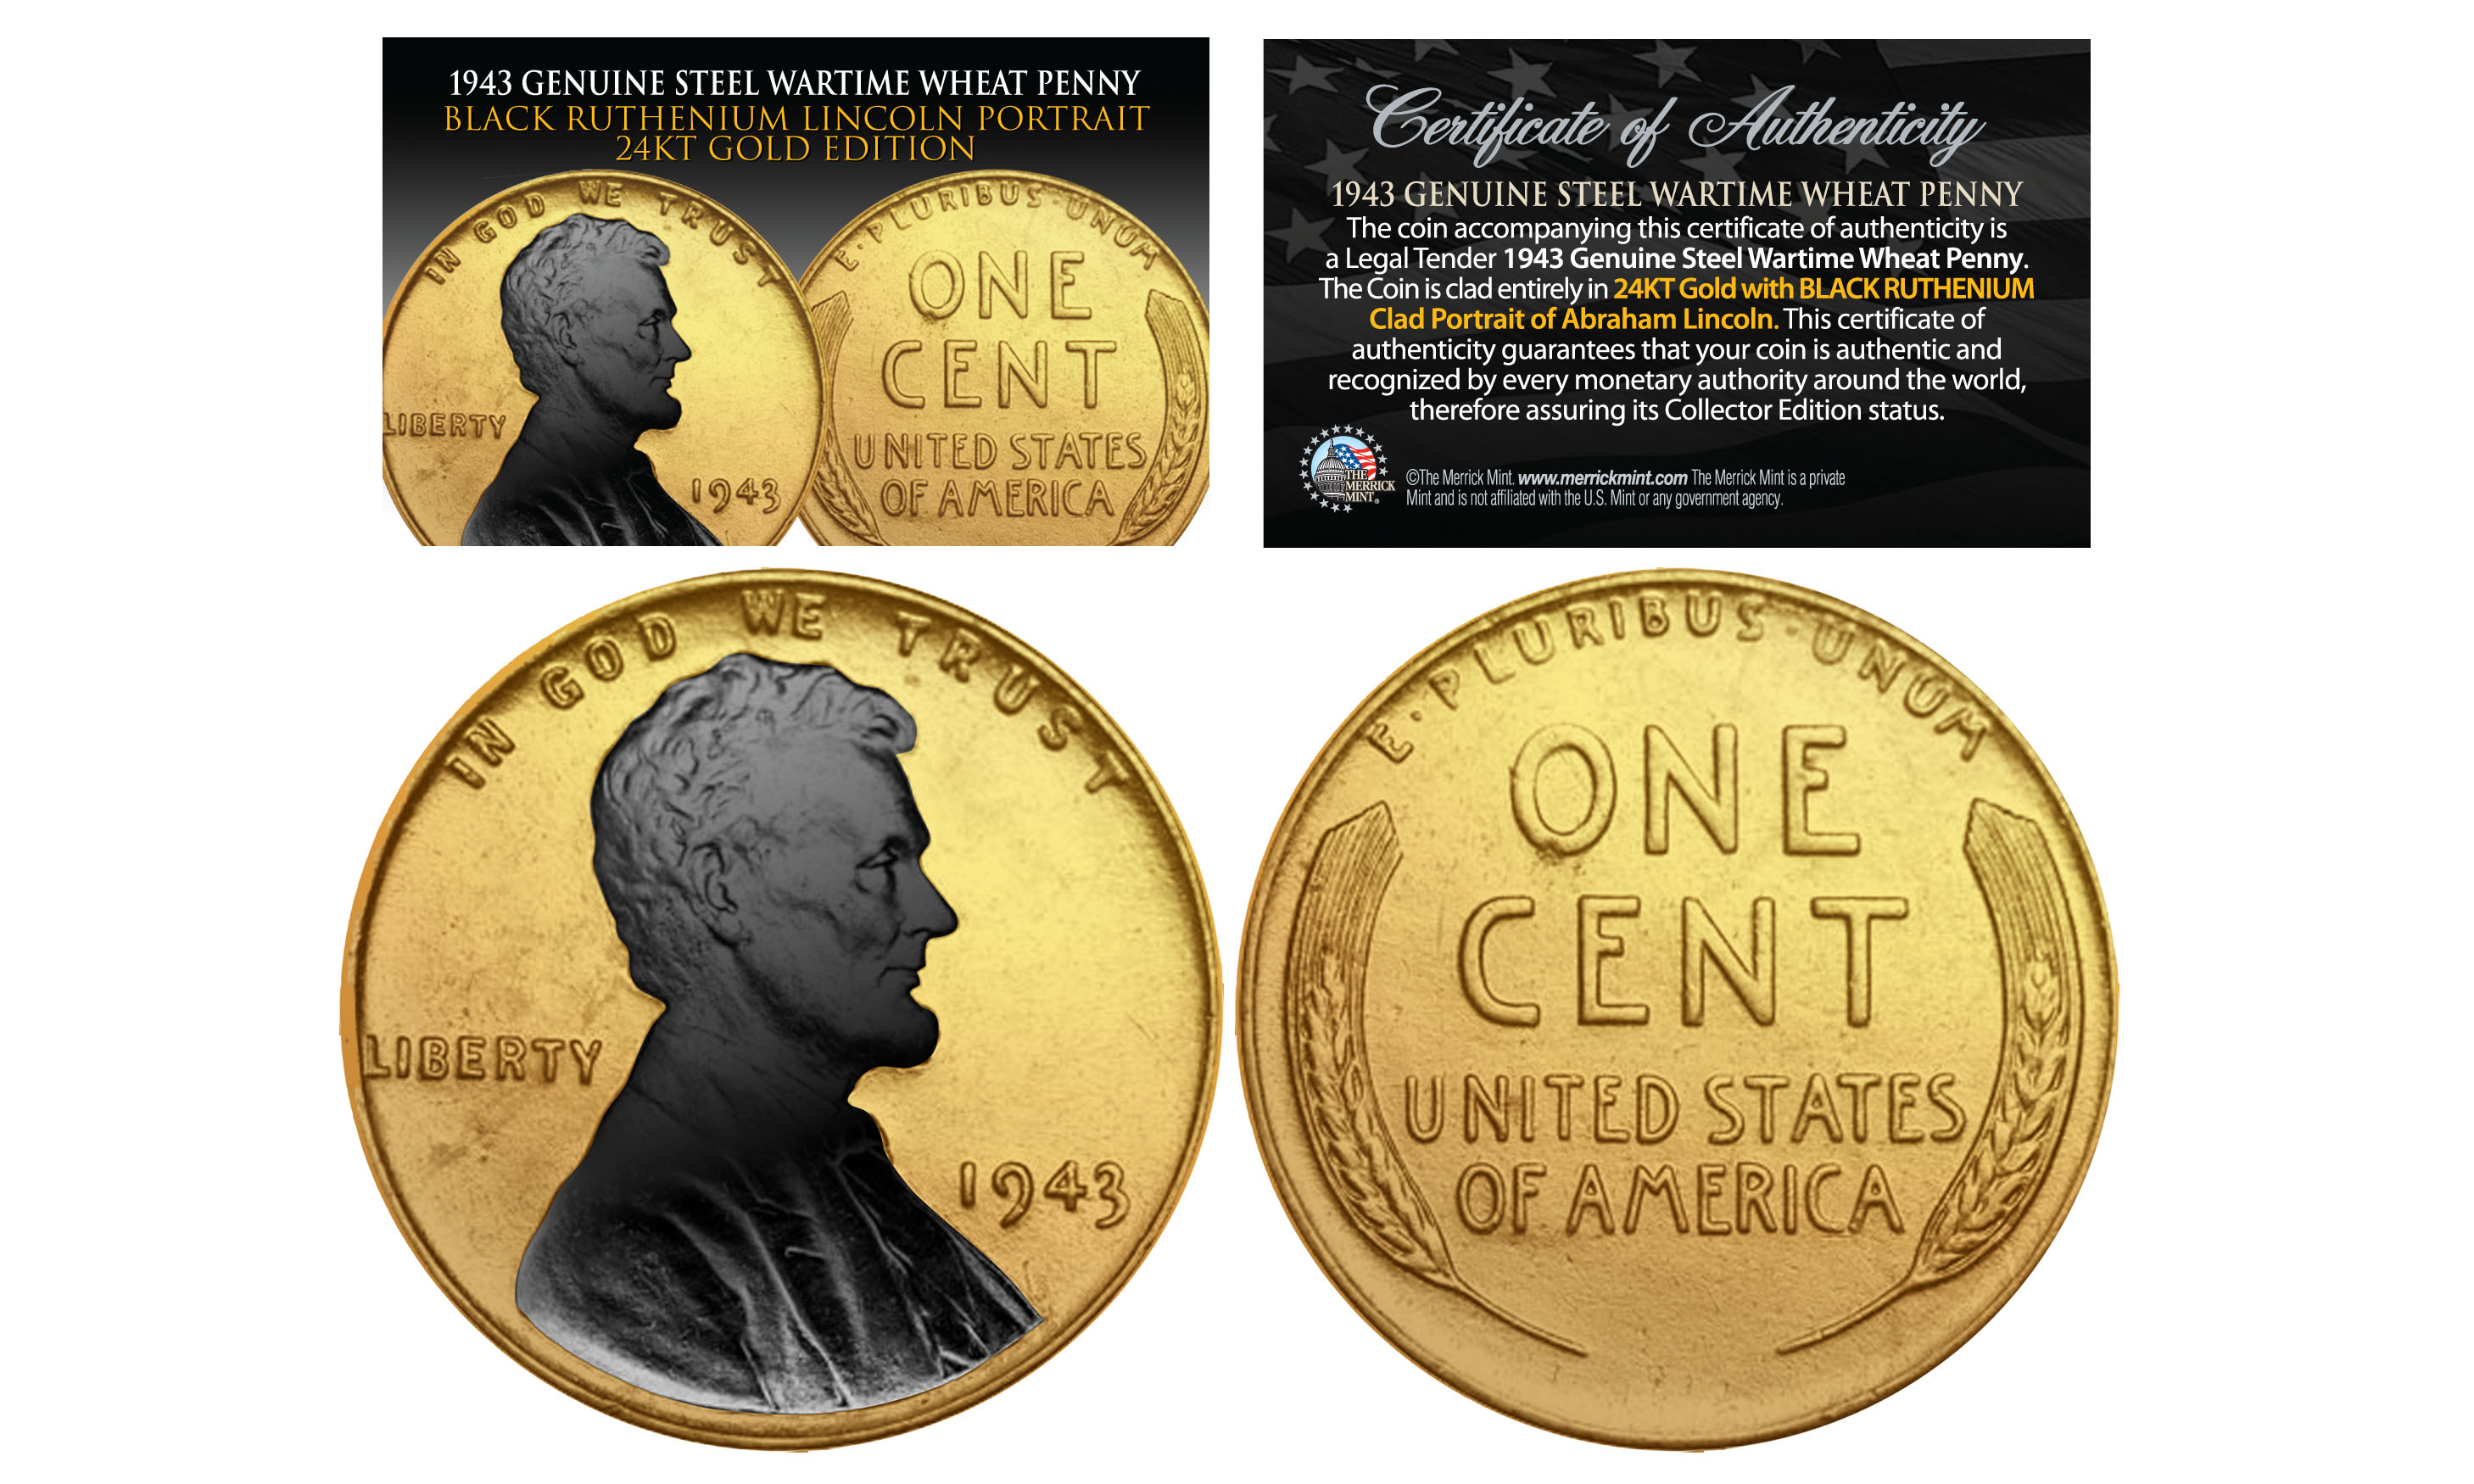 1943 Gold Plated Steel Wartime Wheat Penny Coin With Black